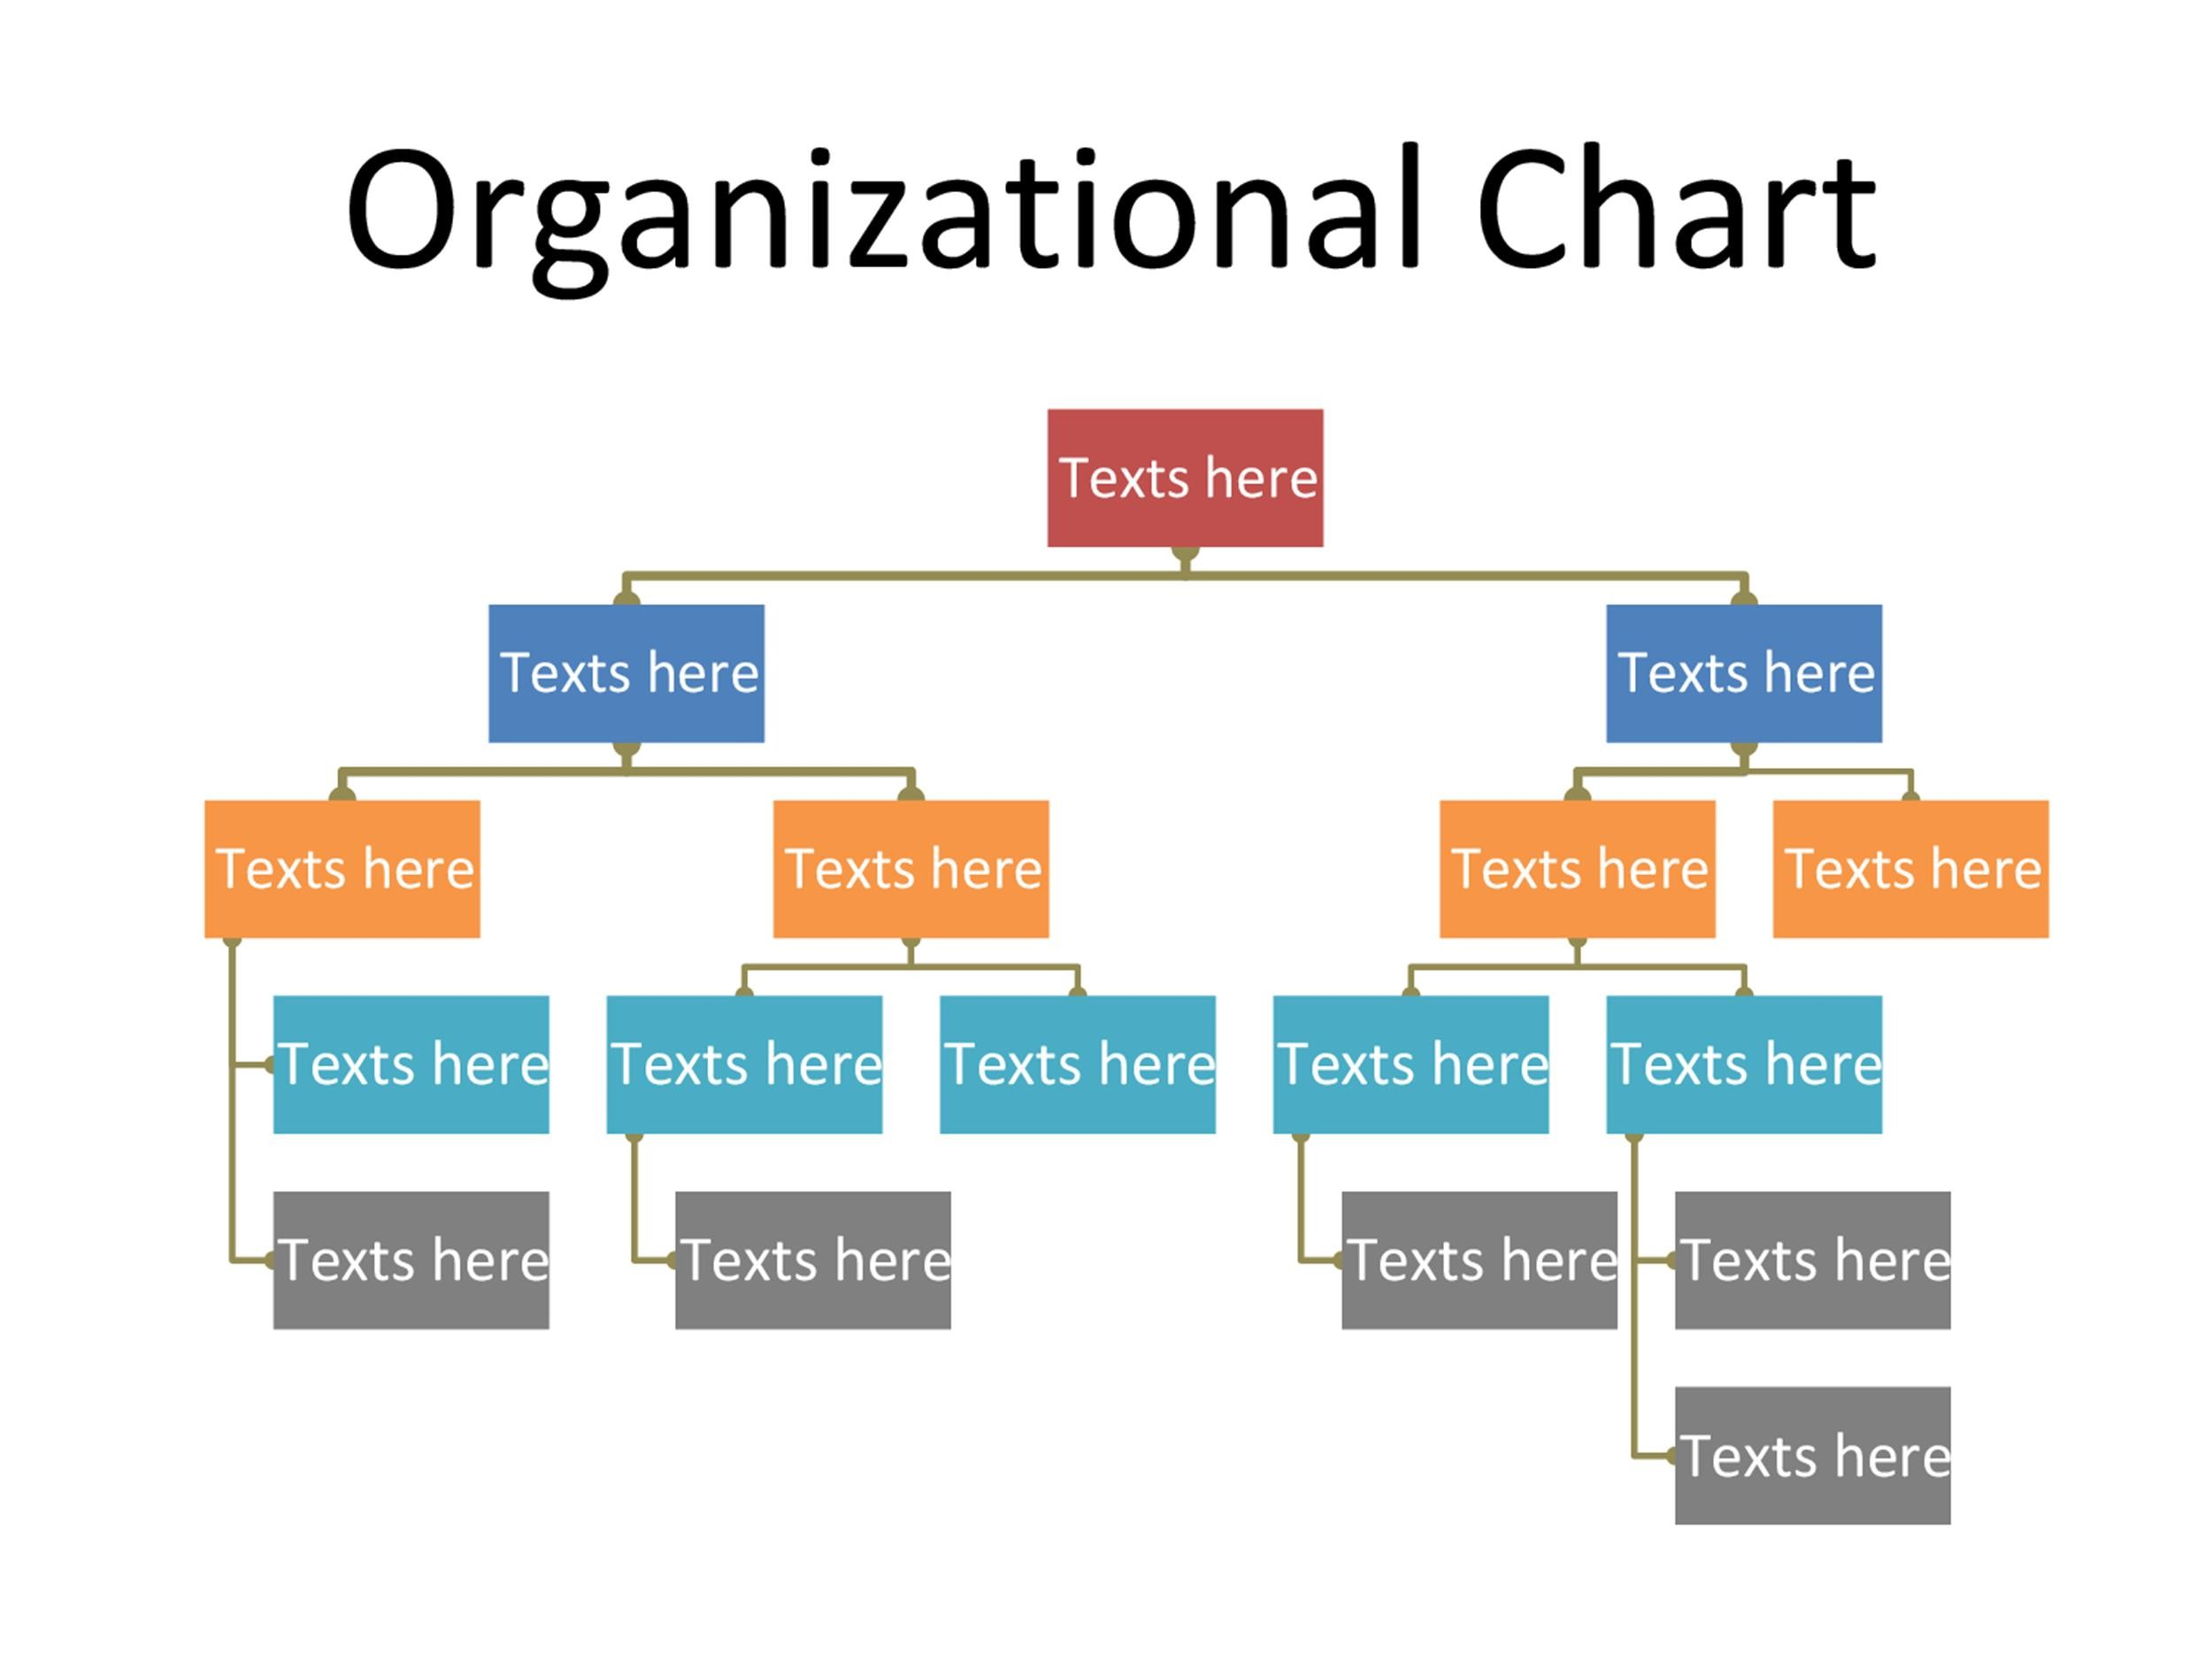 40 organizational chart templates word excel powerpoint free organizational chart template 19 cheaphphosting Image collections